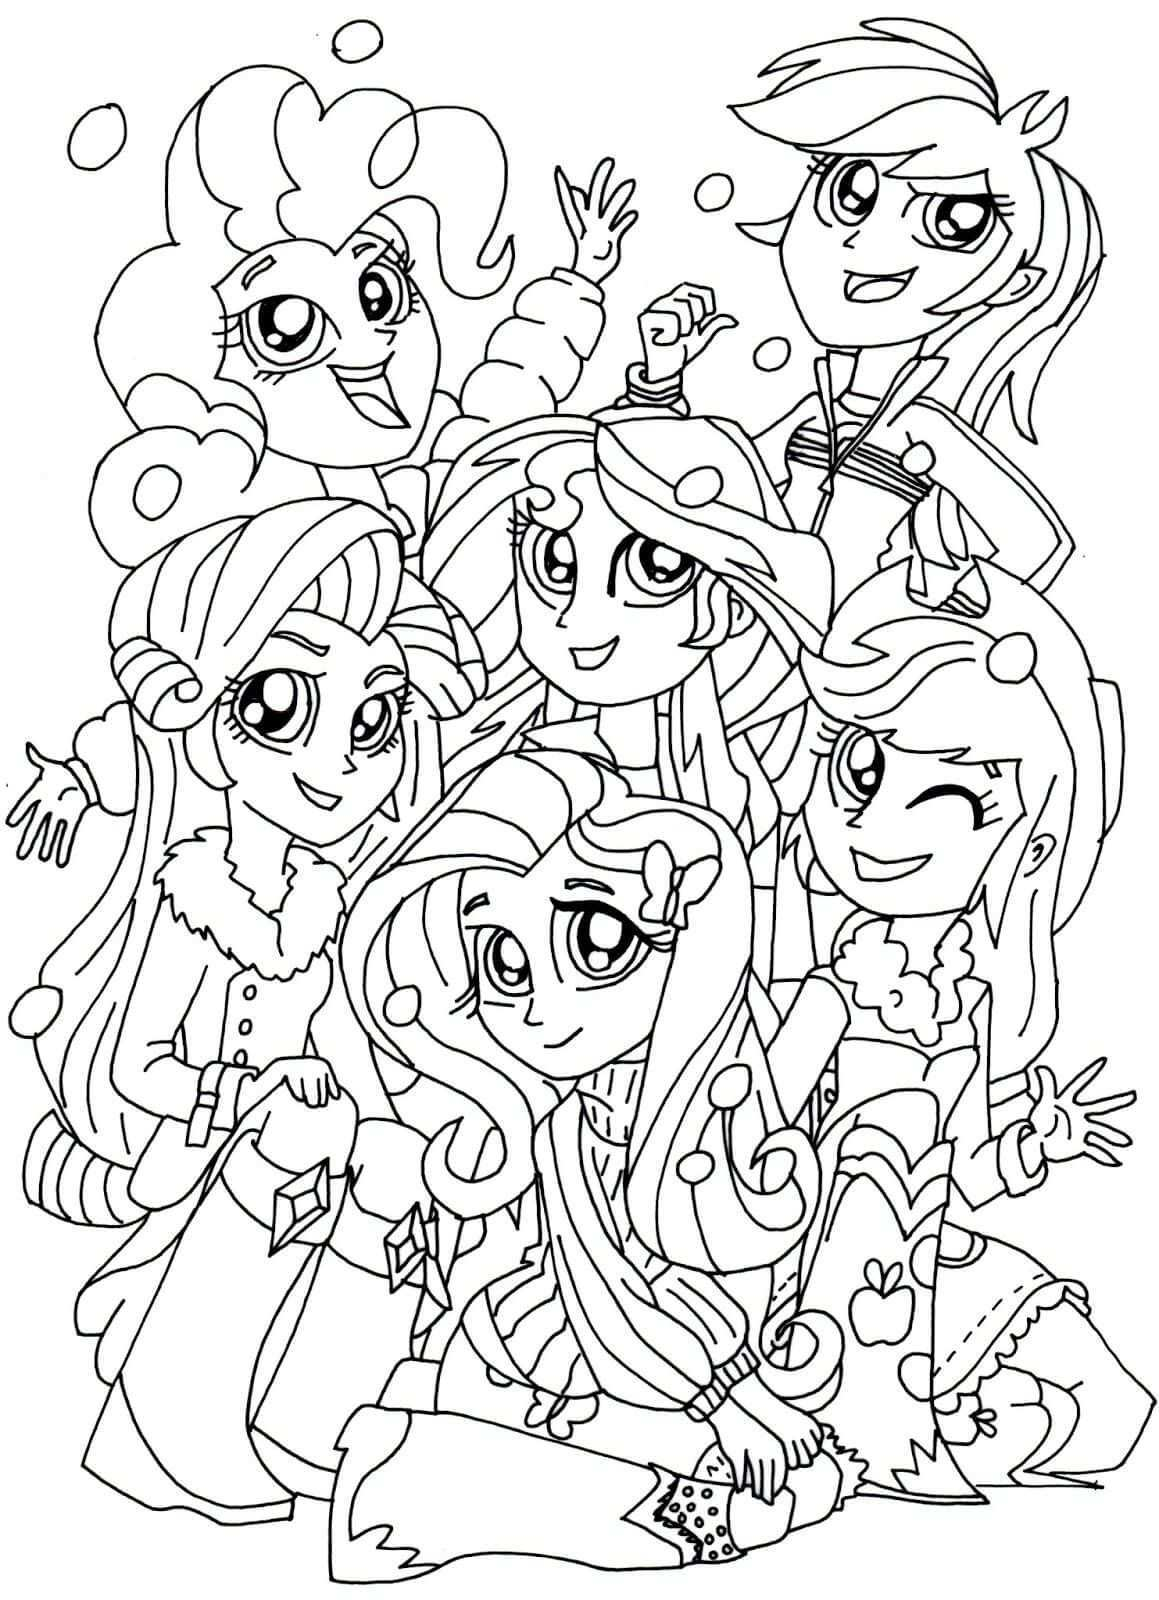 My Little Pony Equestria Girls Coloring Pages My Little Pony Coloring Coloring Pages For Girls My Little Pony Twilight